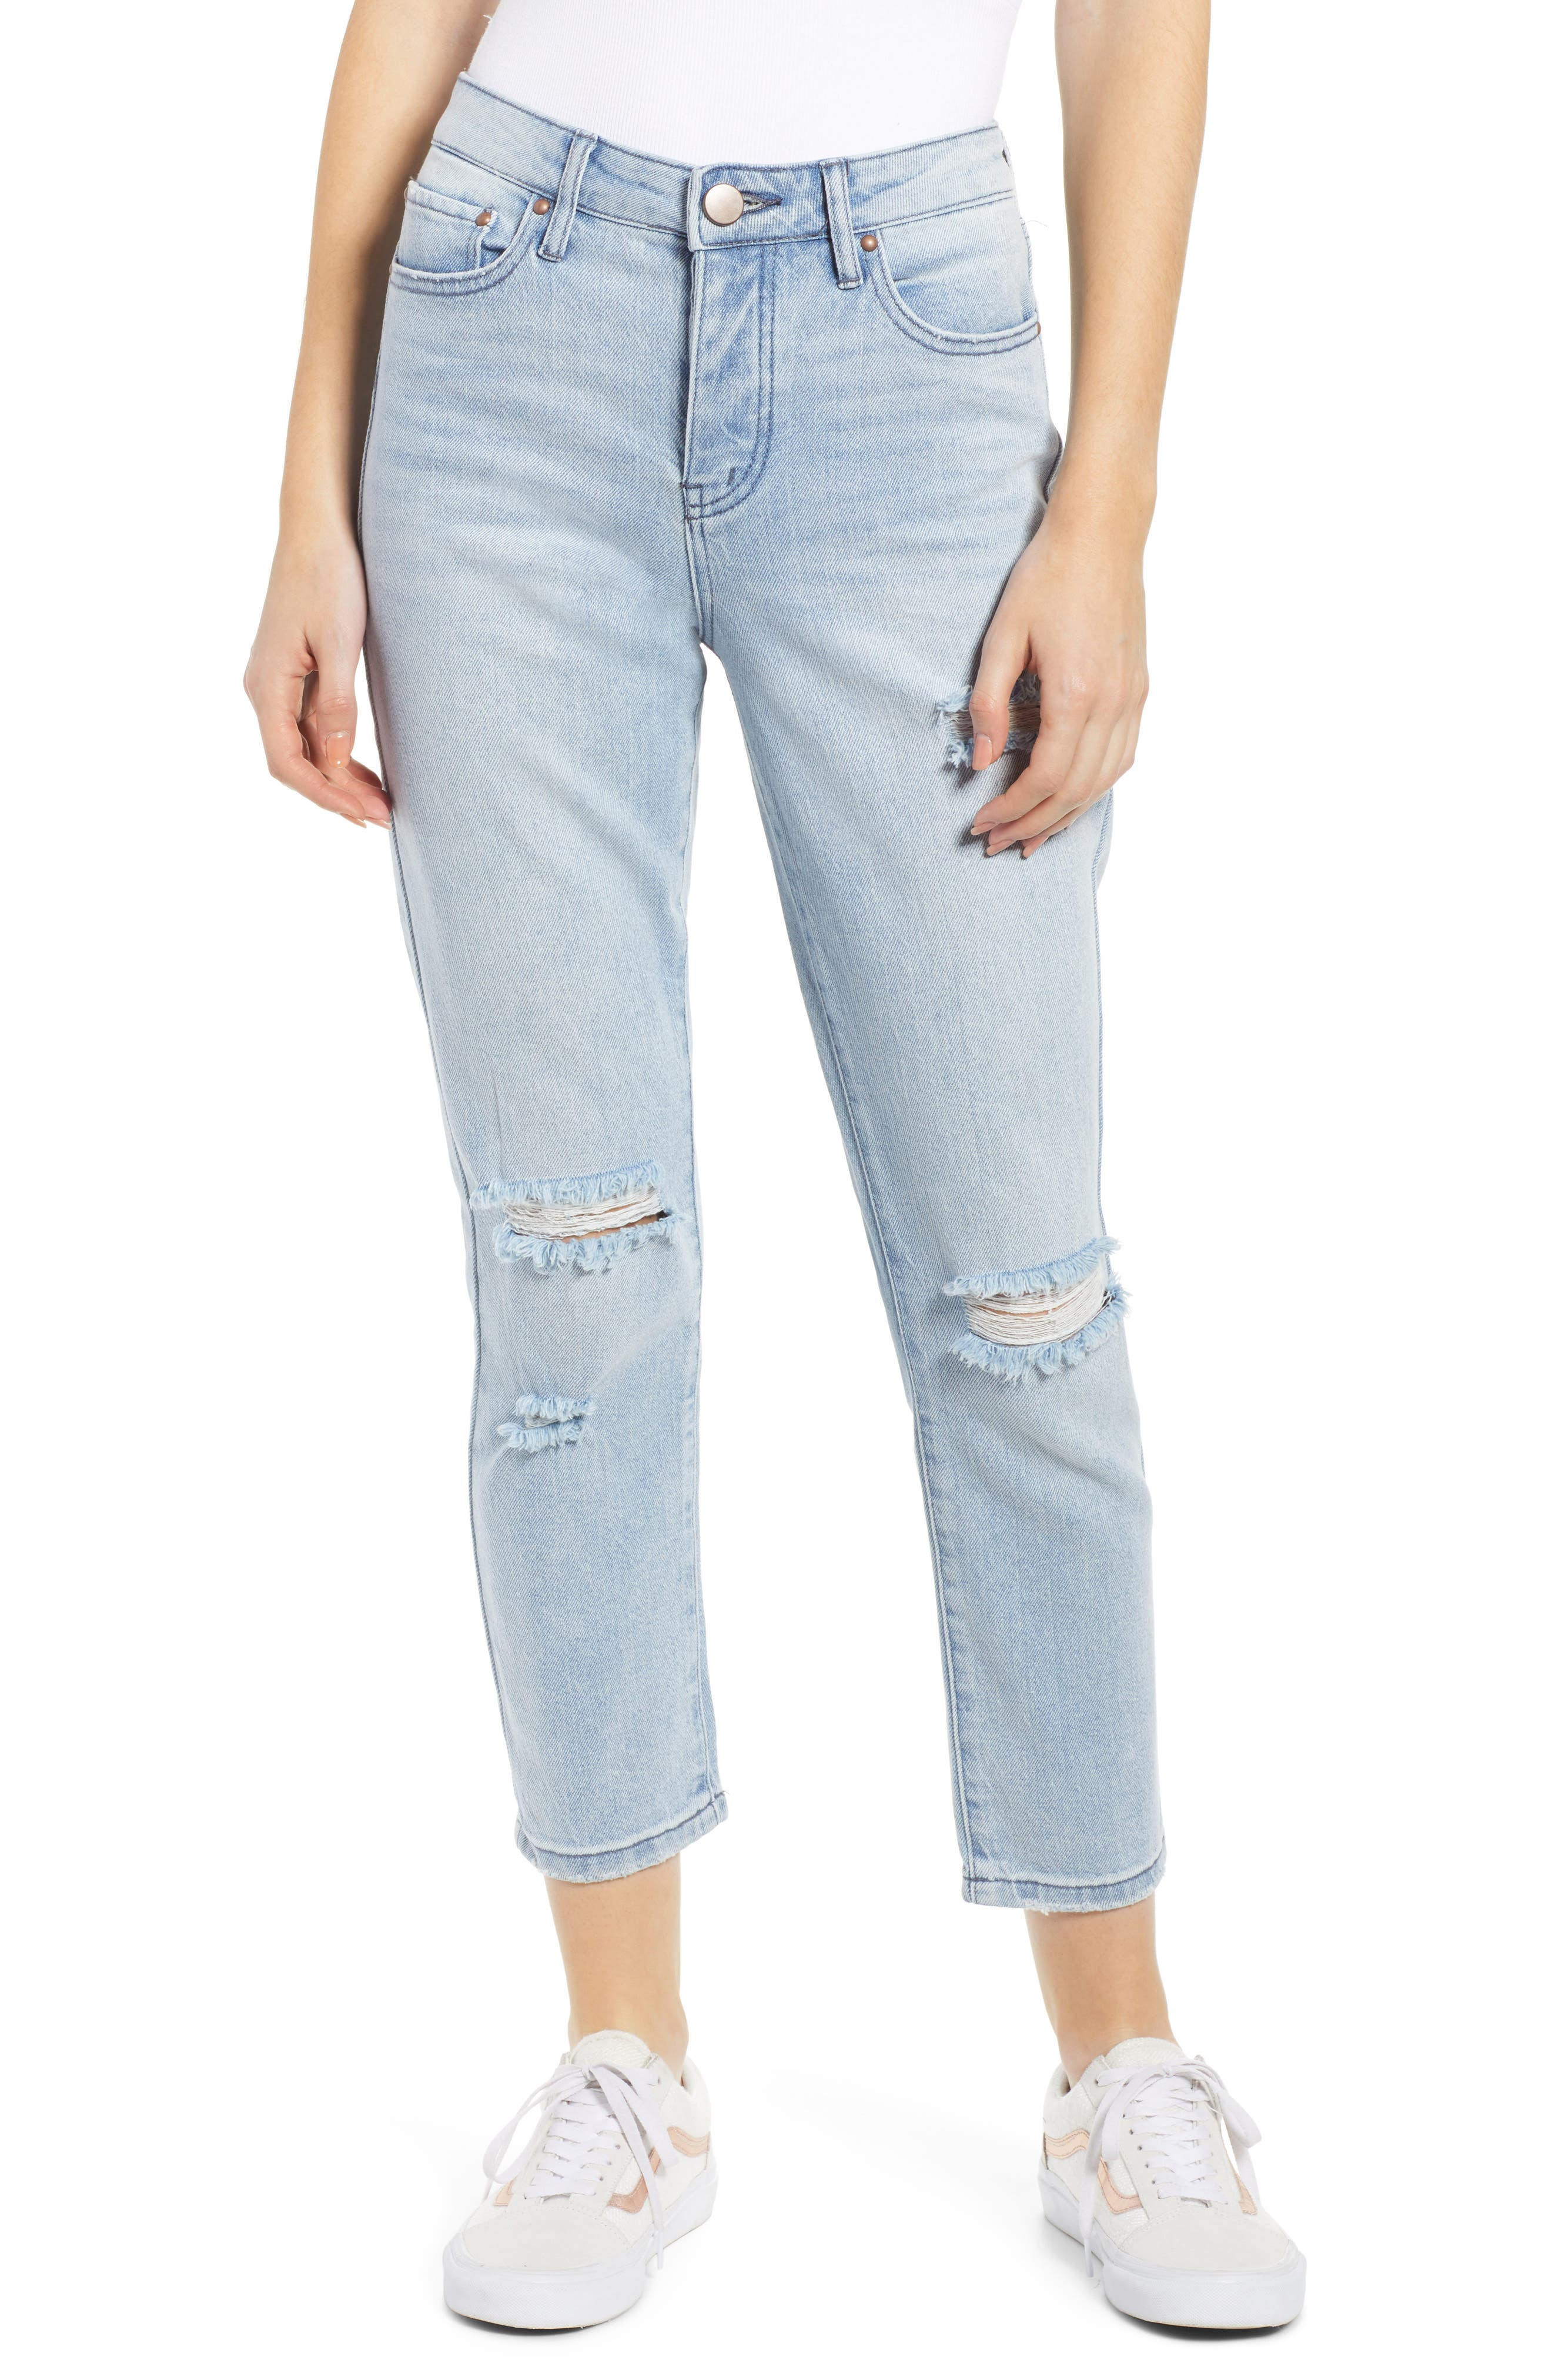 PROSPERITY DENIM, Ripped Ankle Straight Leg Jeans, Main thumbnail 1, color, LIGHT WASH